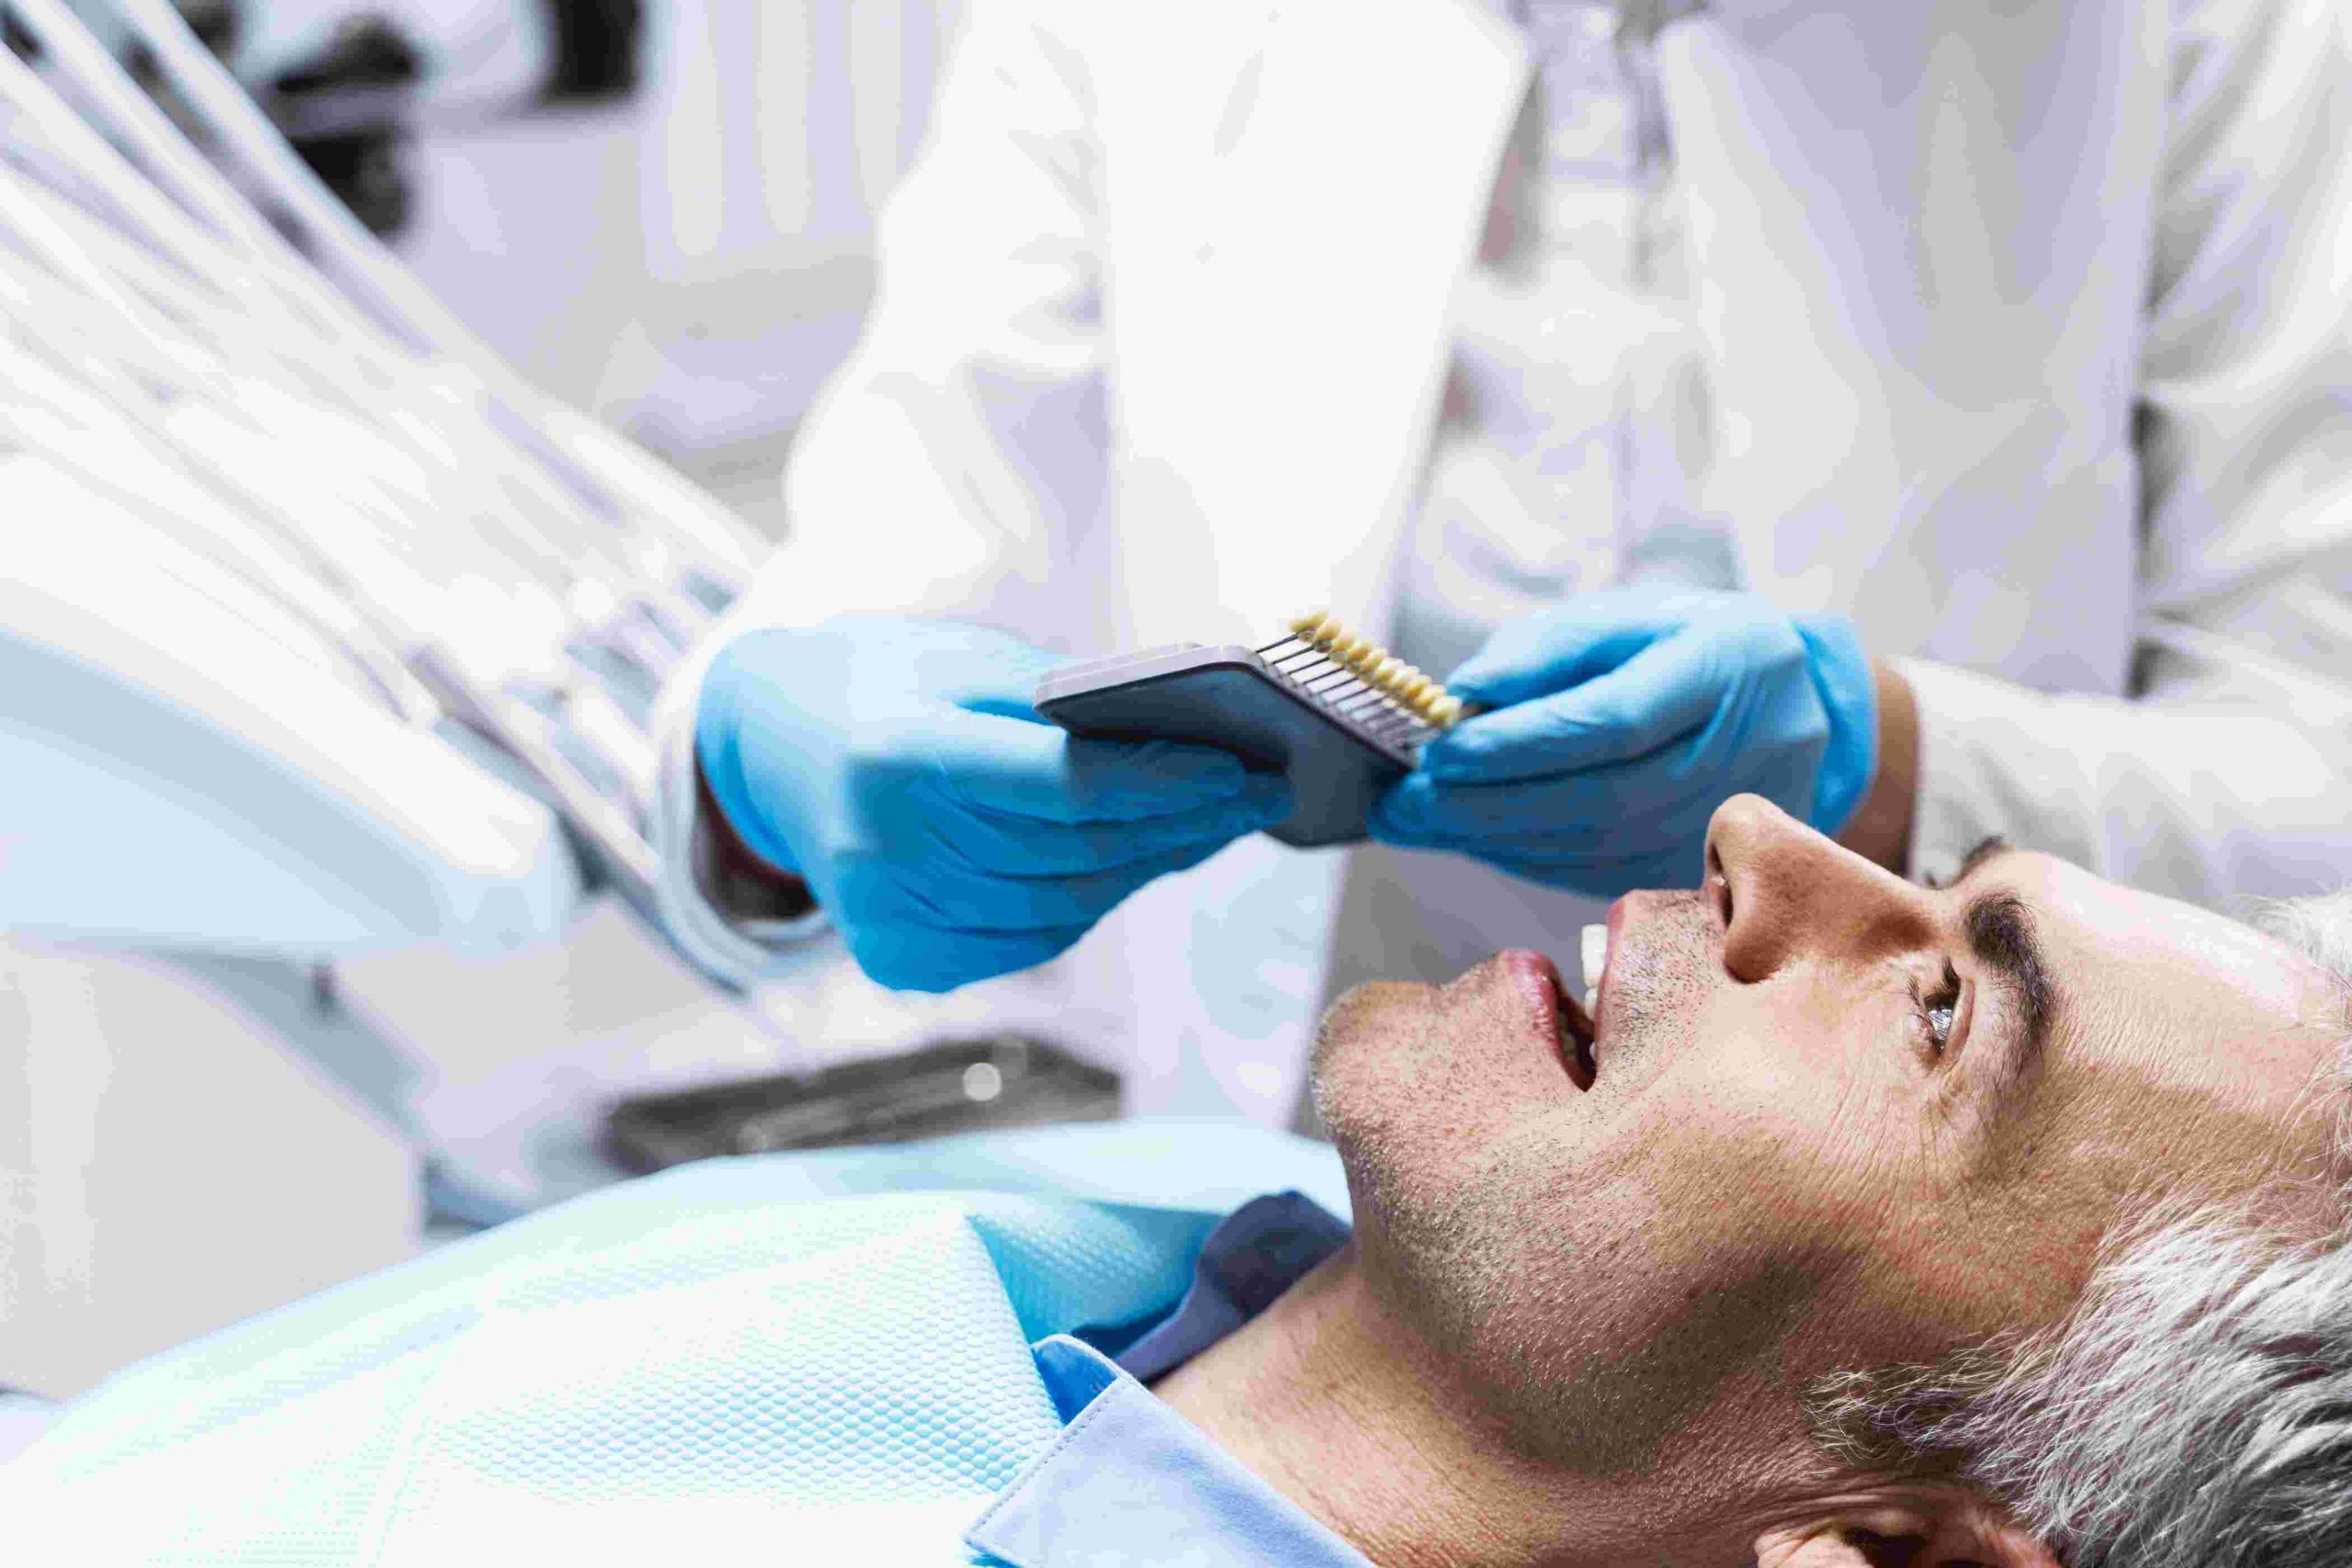 get porcelain veneers to fix crooked teeth at your West Knoxville dentist